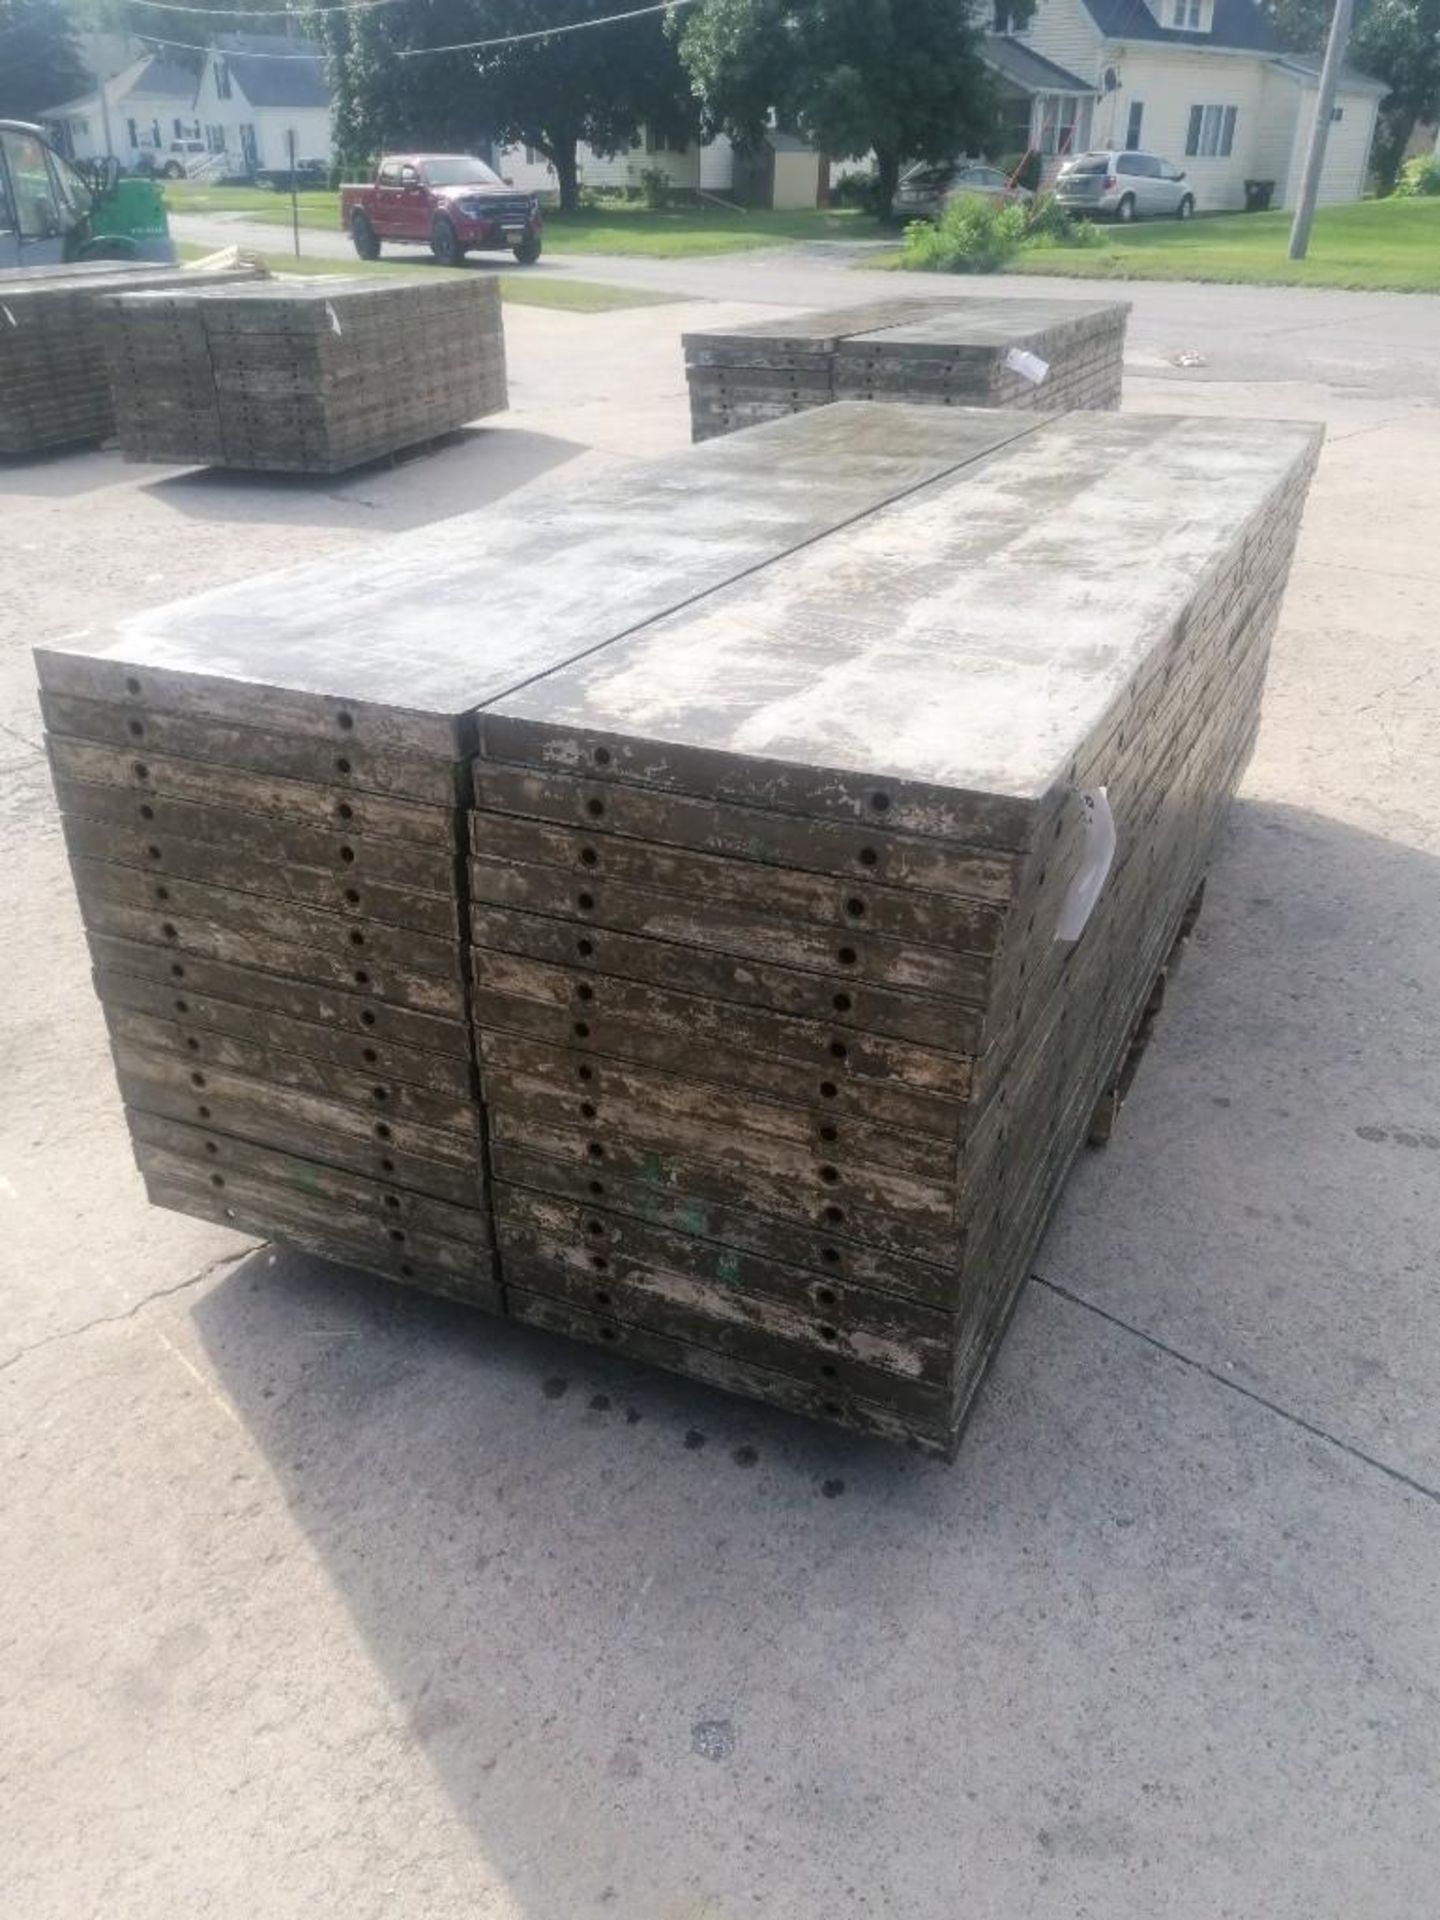 Lot 144 - (30) 2' x 9' Wall-Ties Aluminum Concrete Forms, Laydowns, Smooth 6-12 Hole Pattern. Located at 301 E